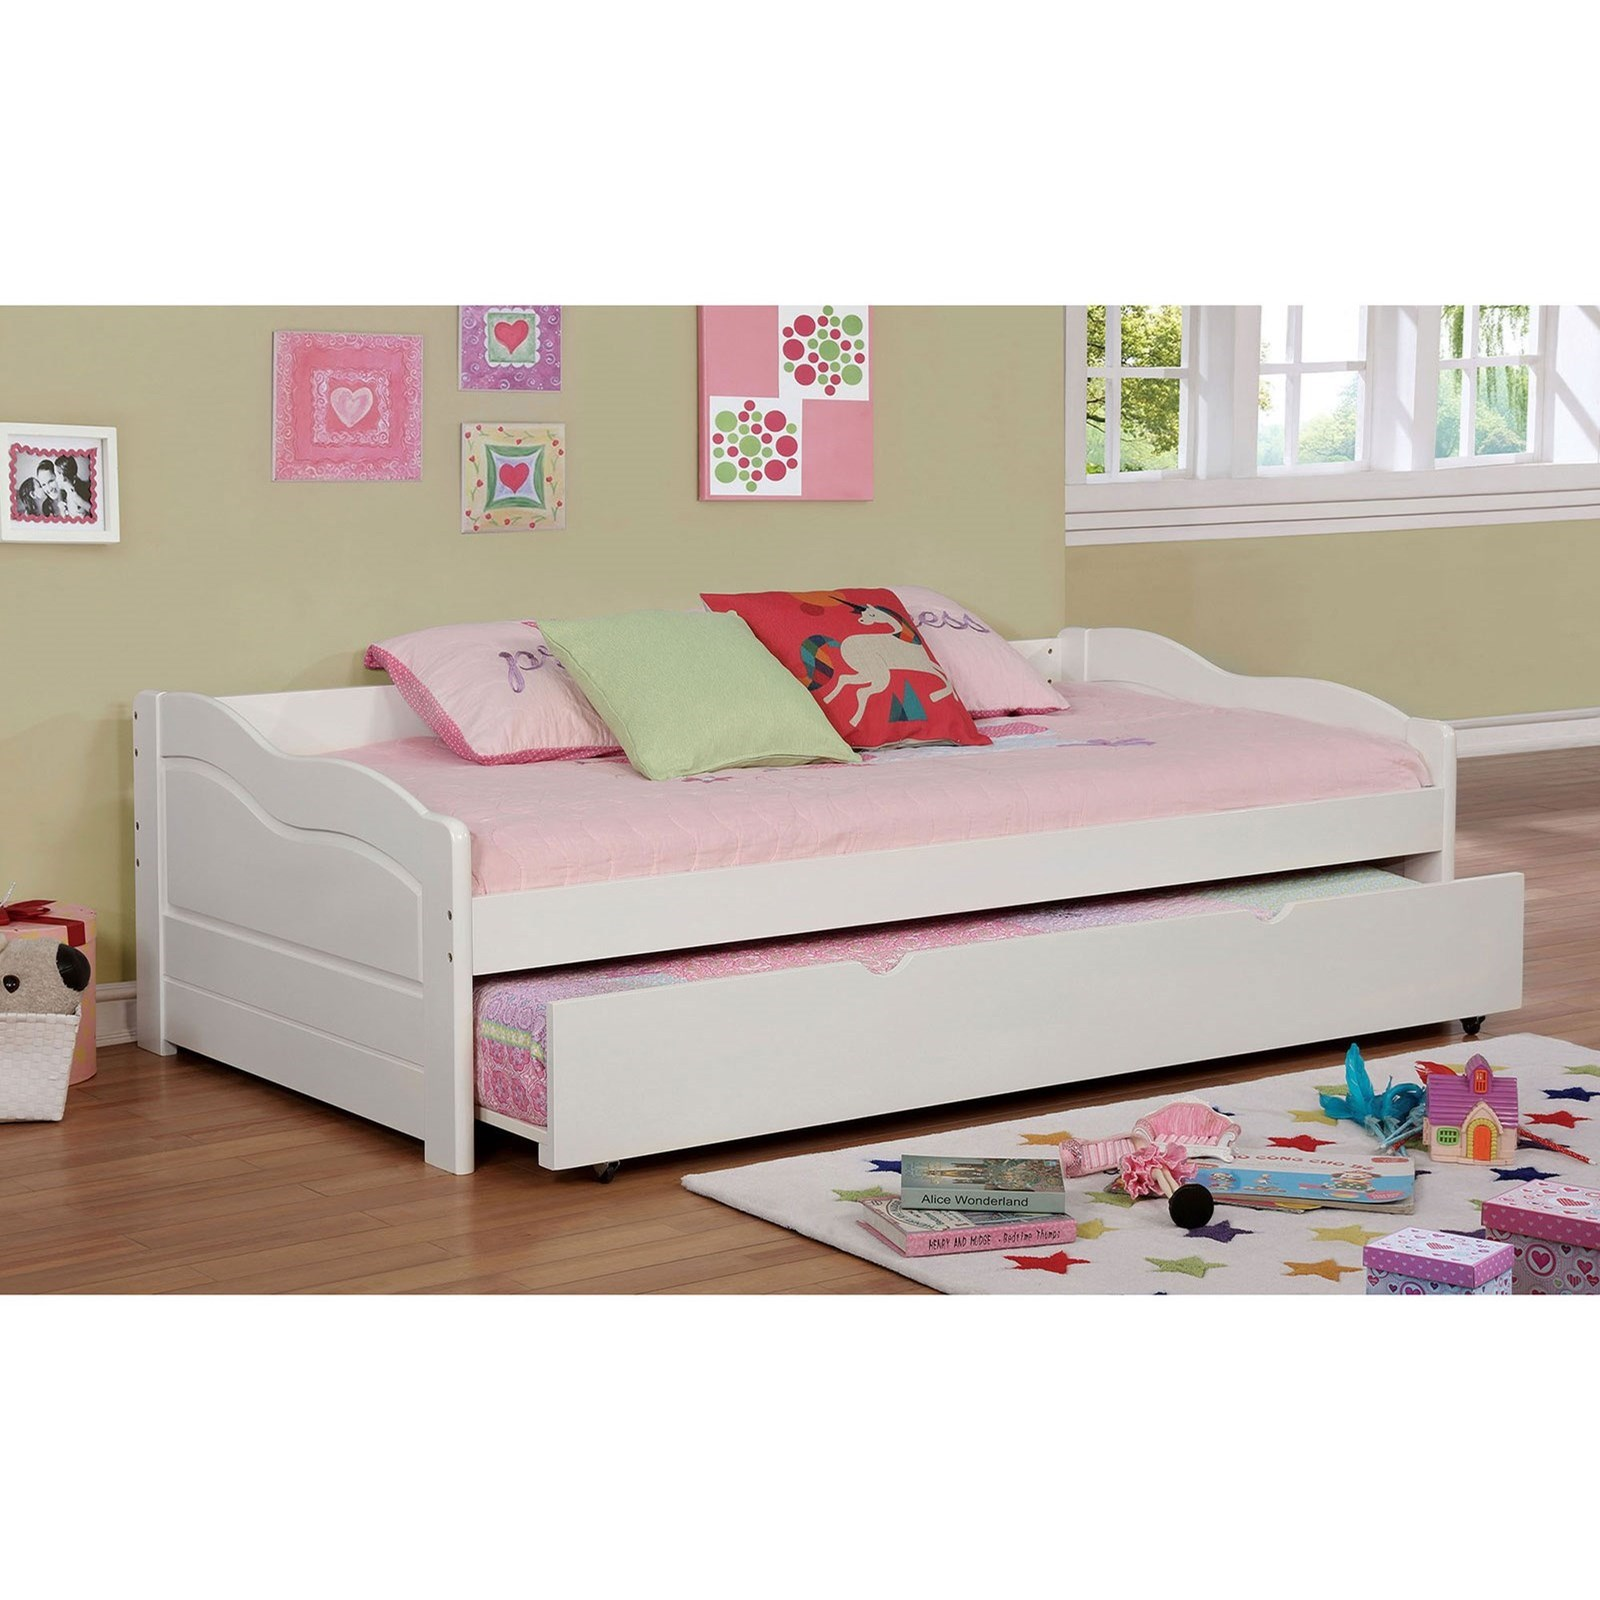 Sunset Daybed with Trundle at Household Furniture